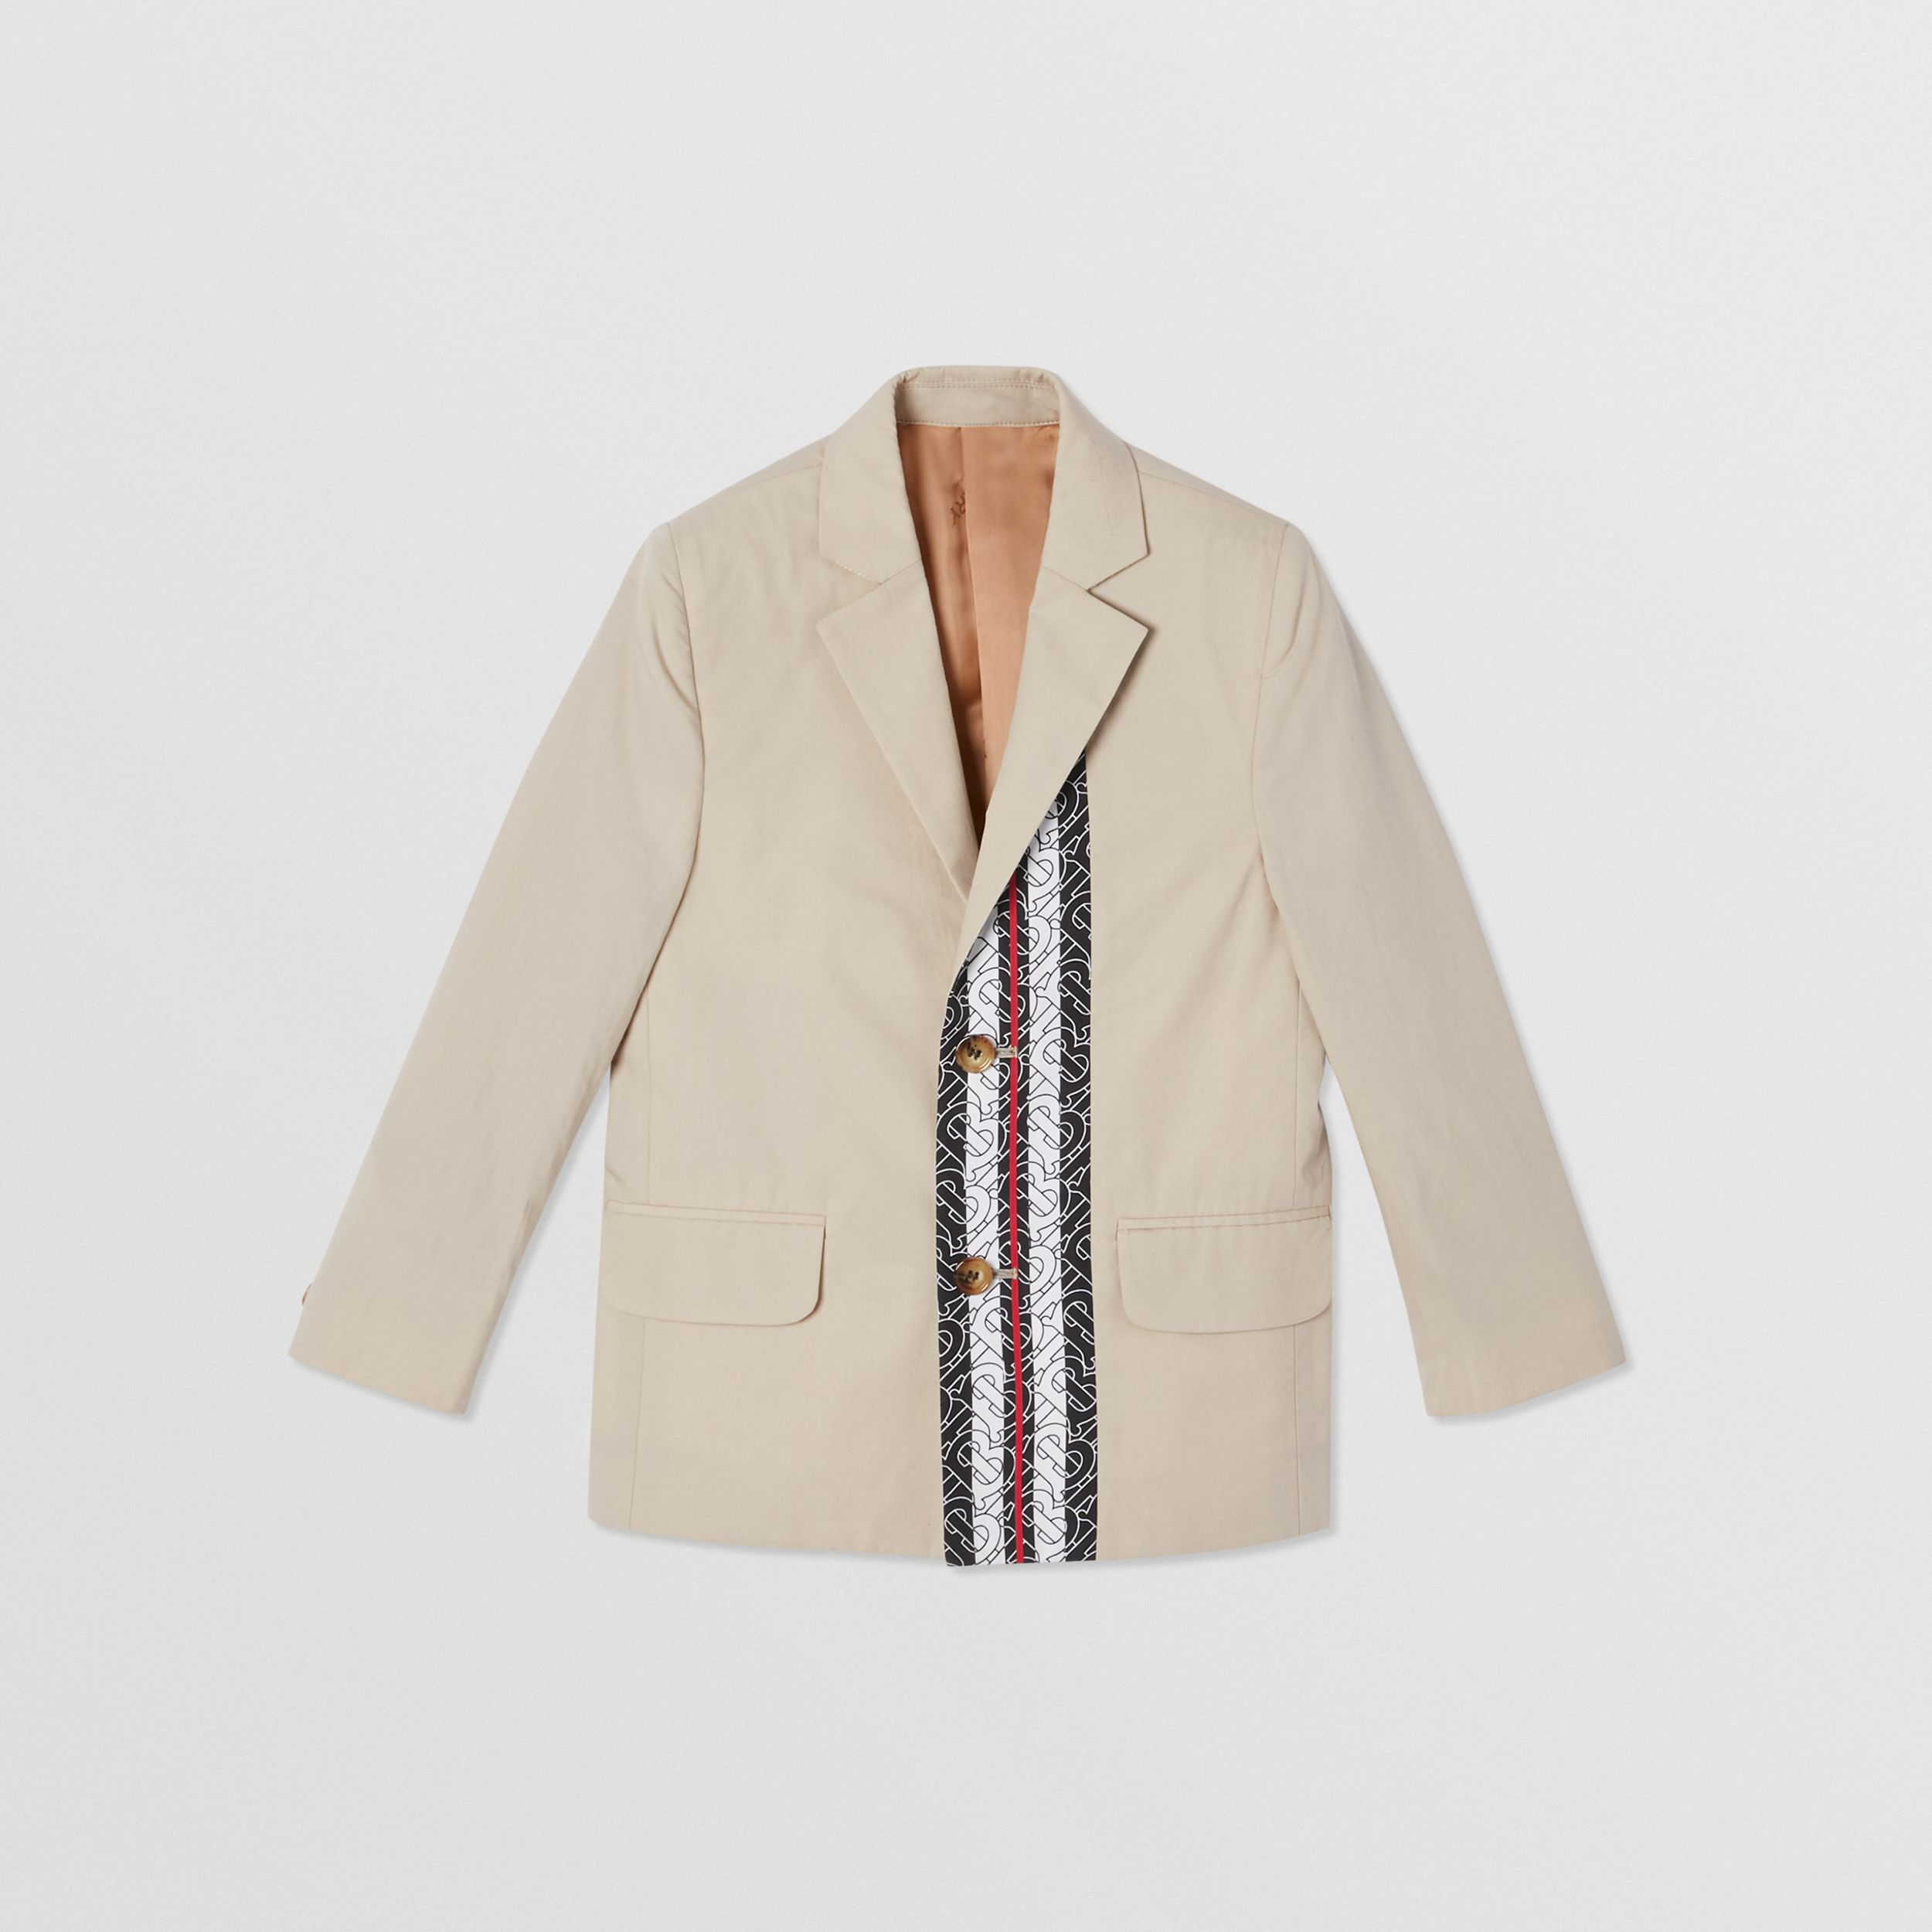 Monogram Stripe Print Cotton Blazer in Stone | Burberry - 1